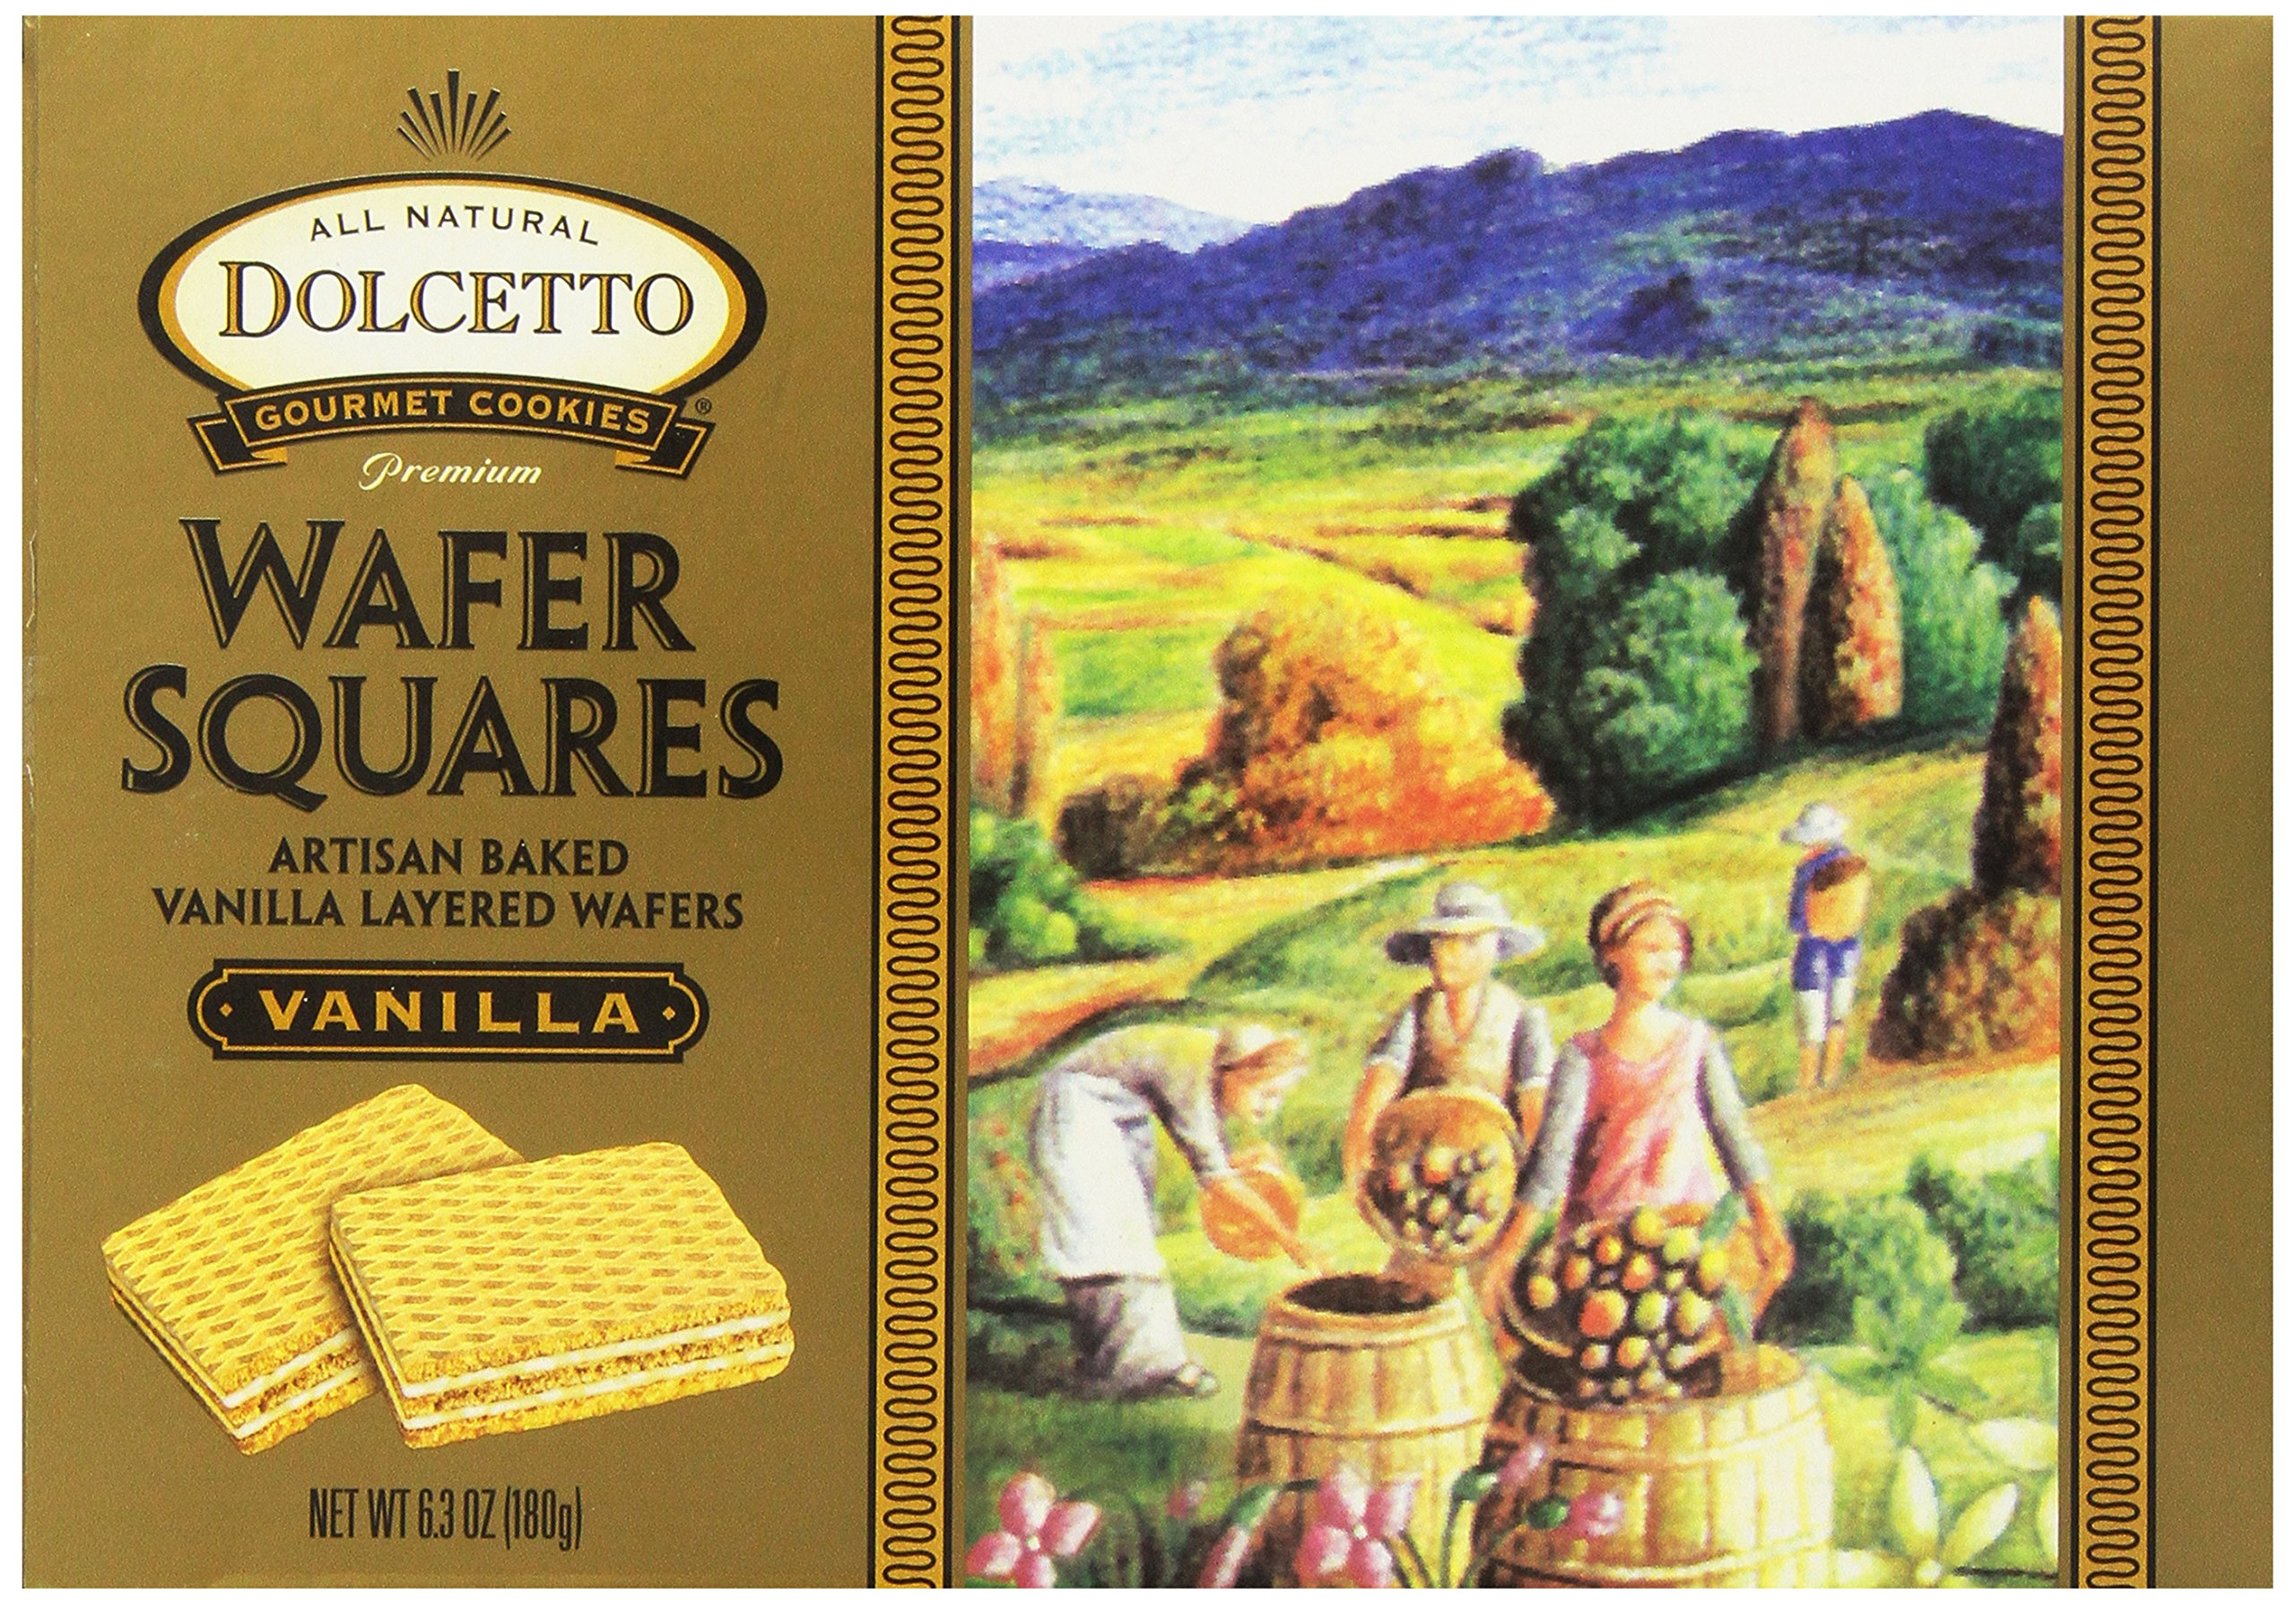 Dolcetto All Natural Wafer Squares, Vanilla, 6.3 Ounce (Pack of 12)